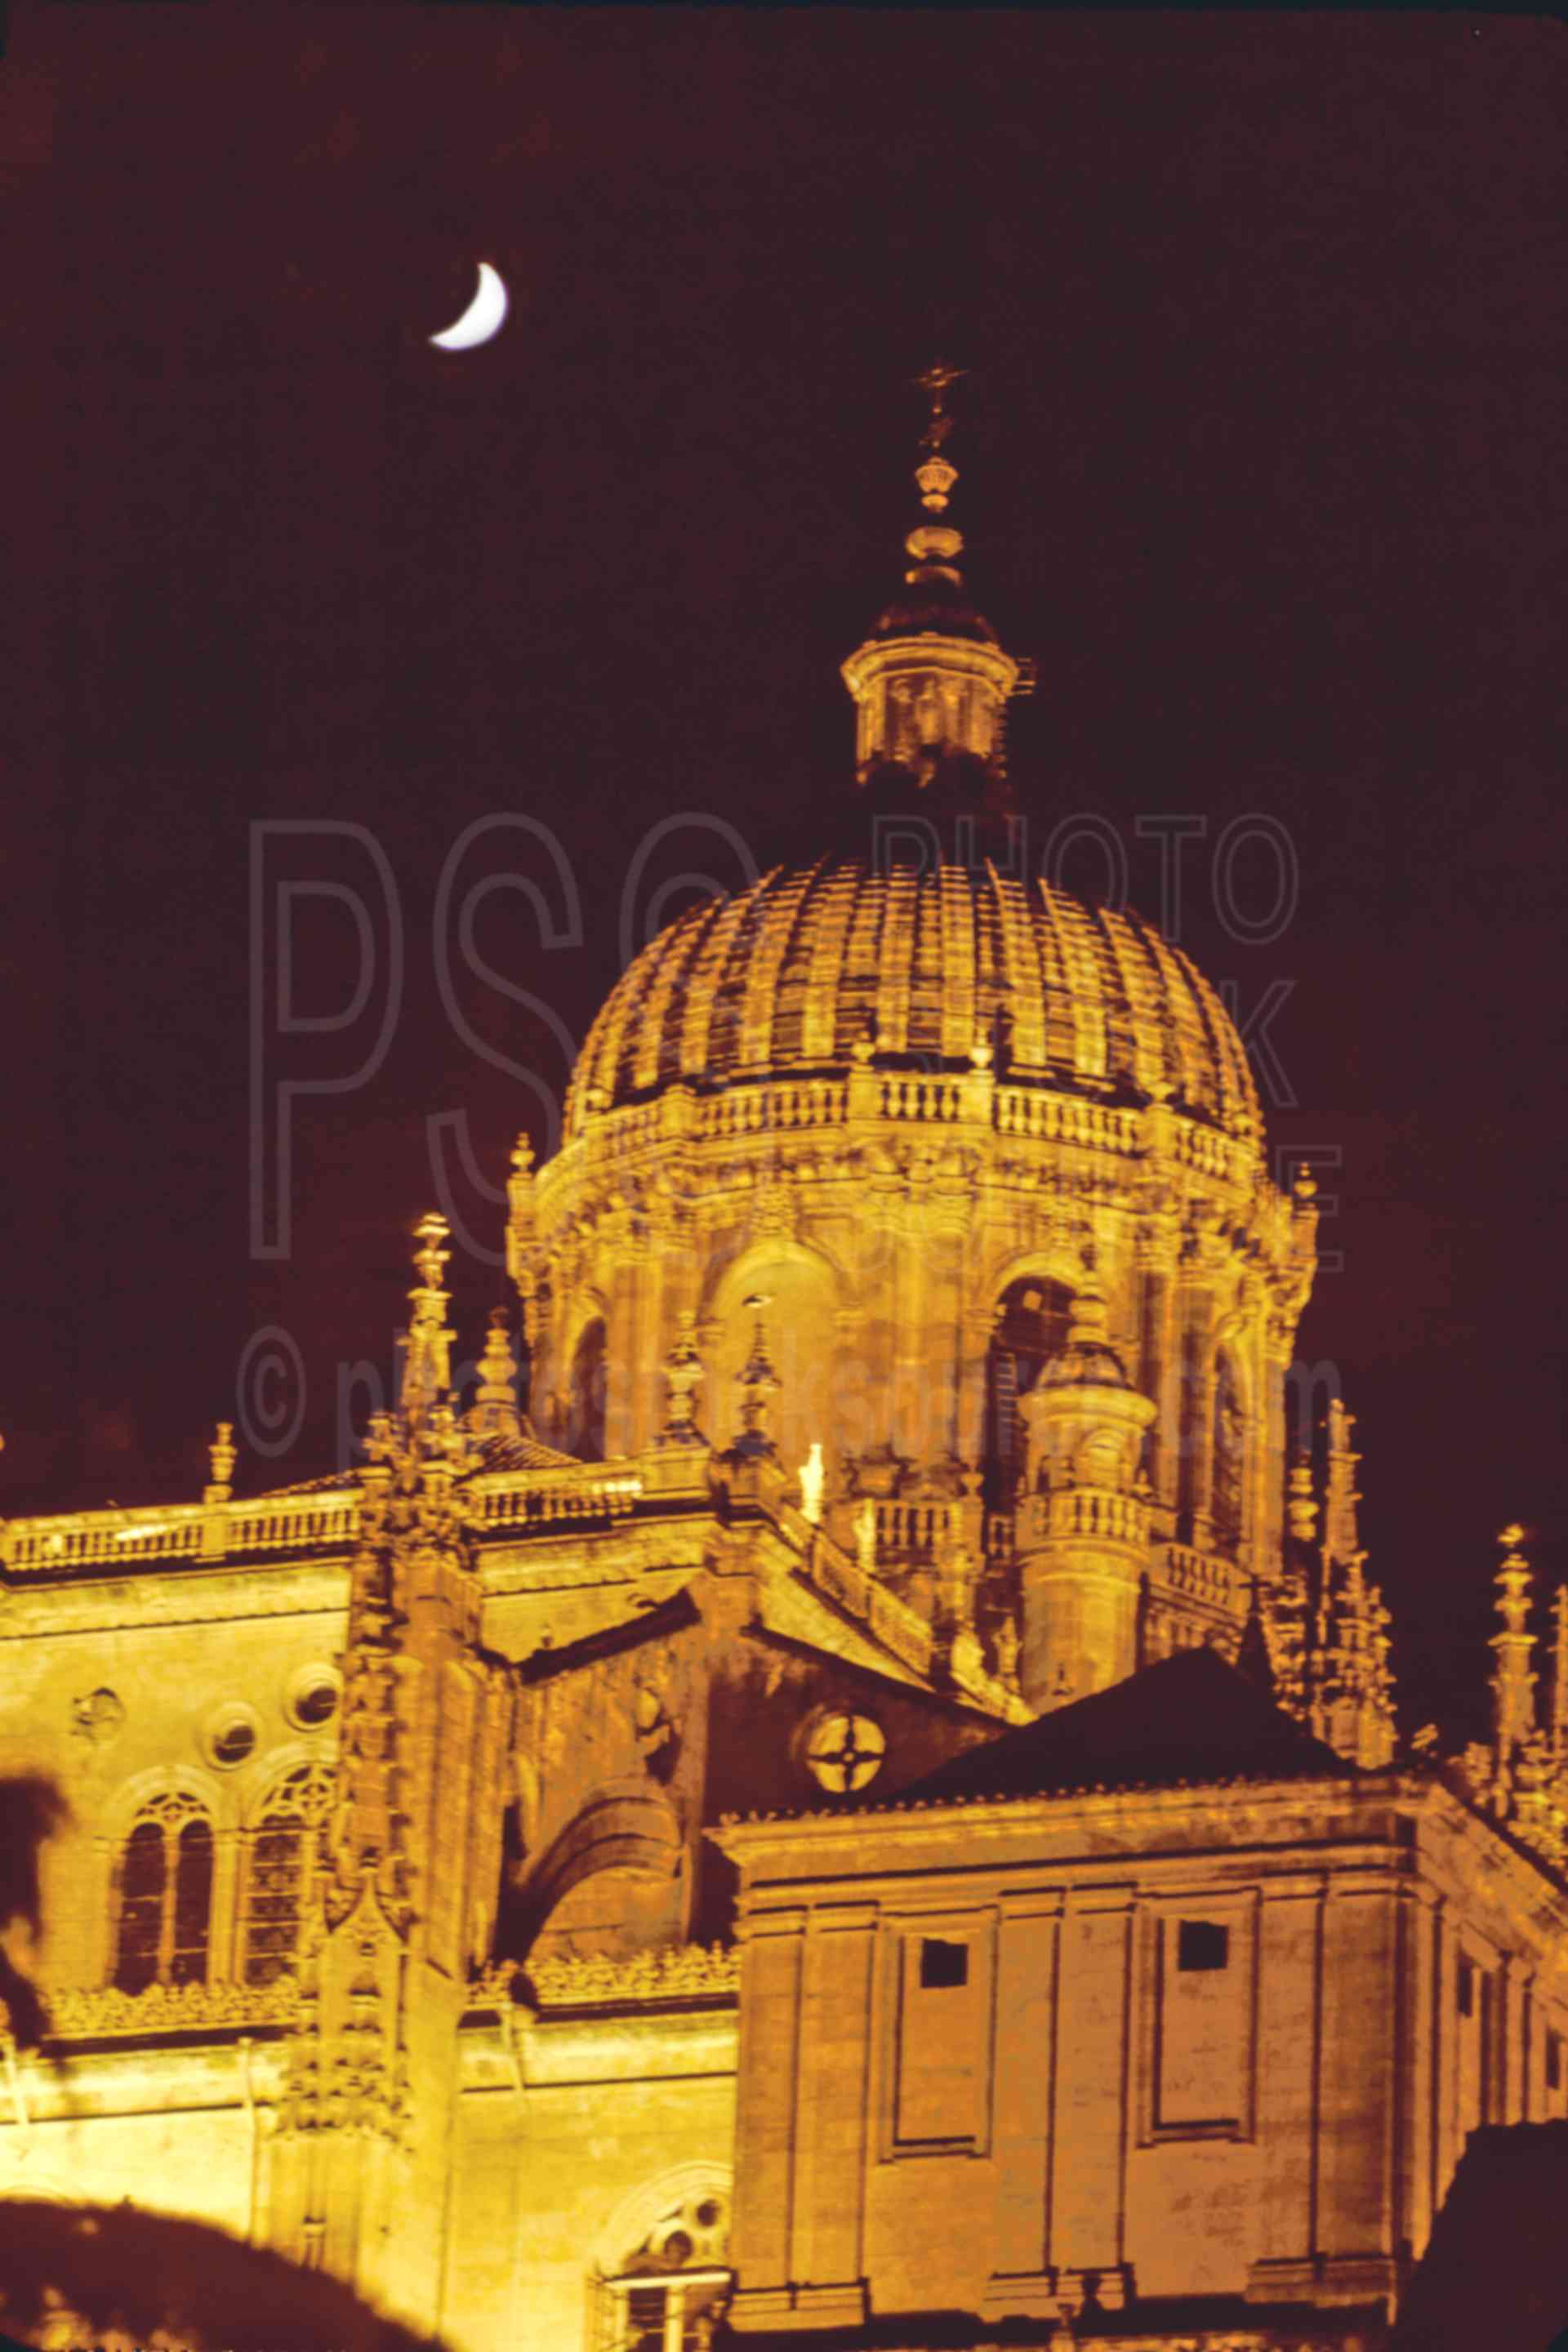 New Church and Moon,church,europe,moon,night,architecture,churches